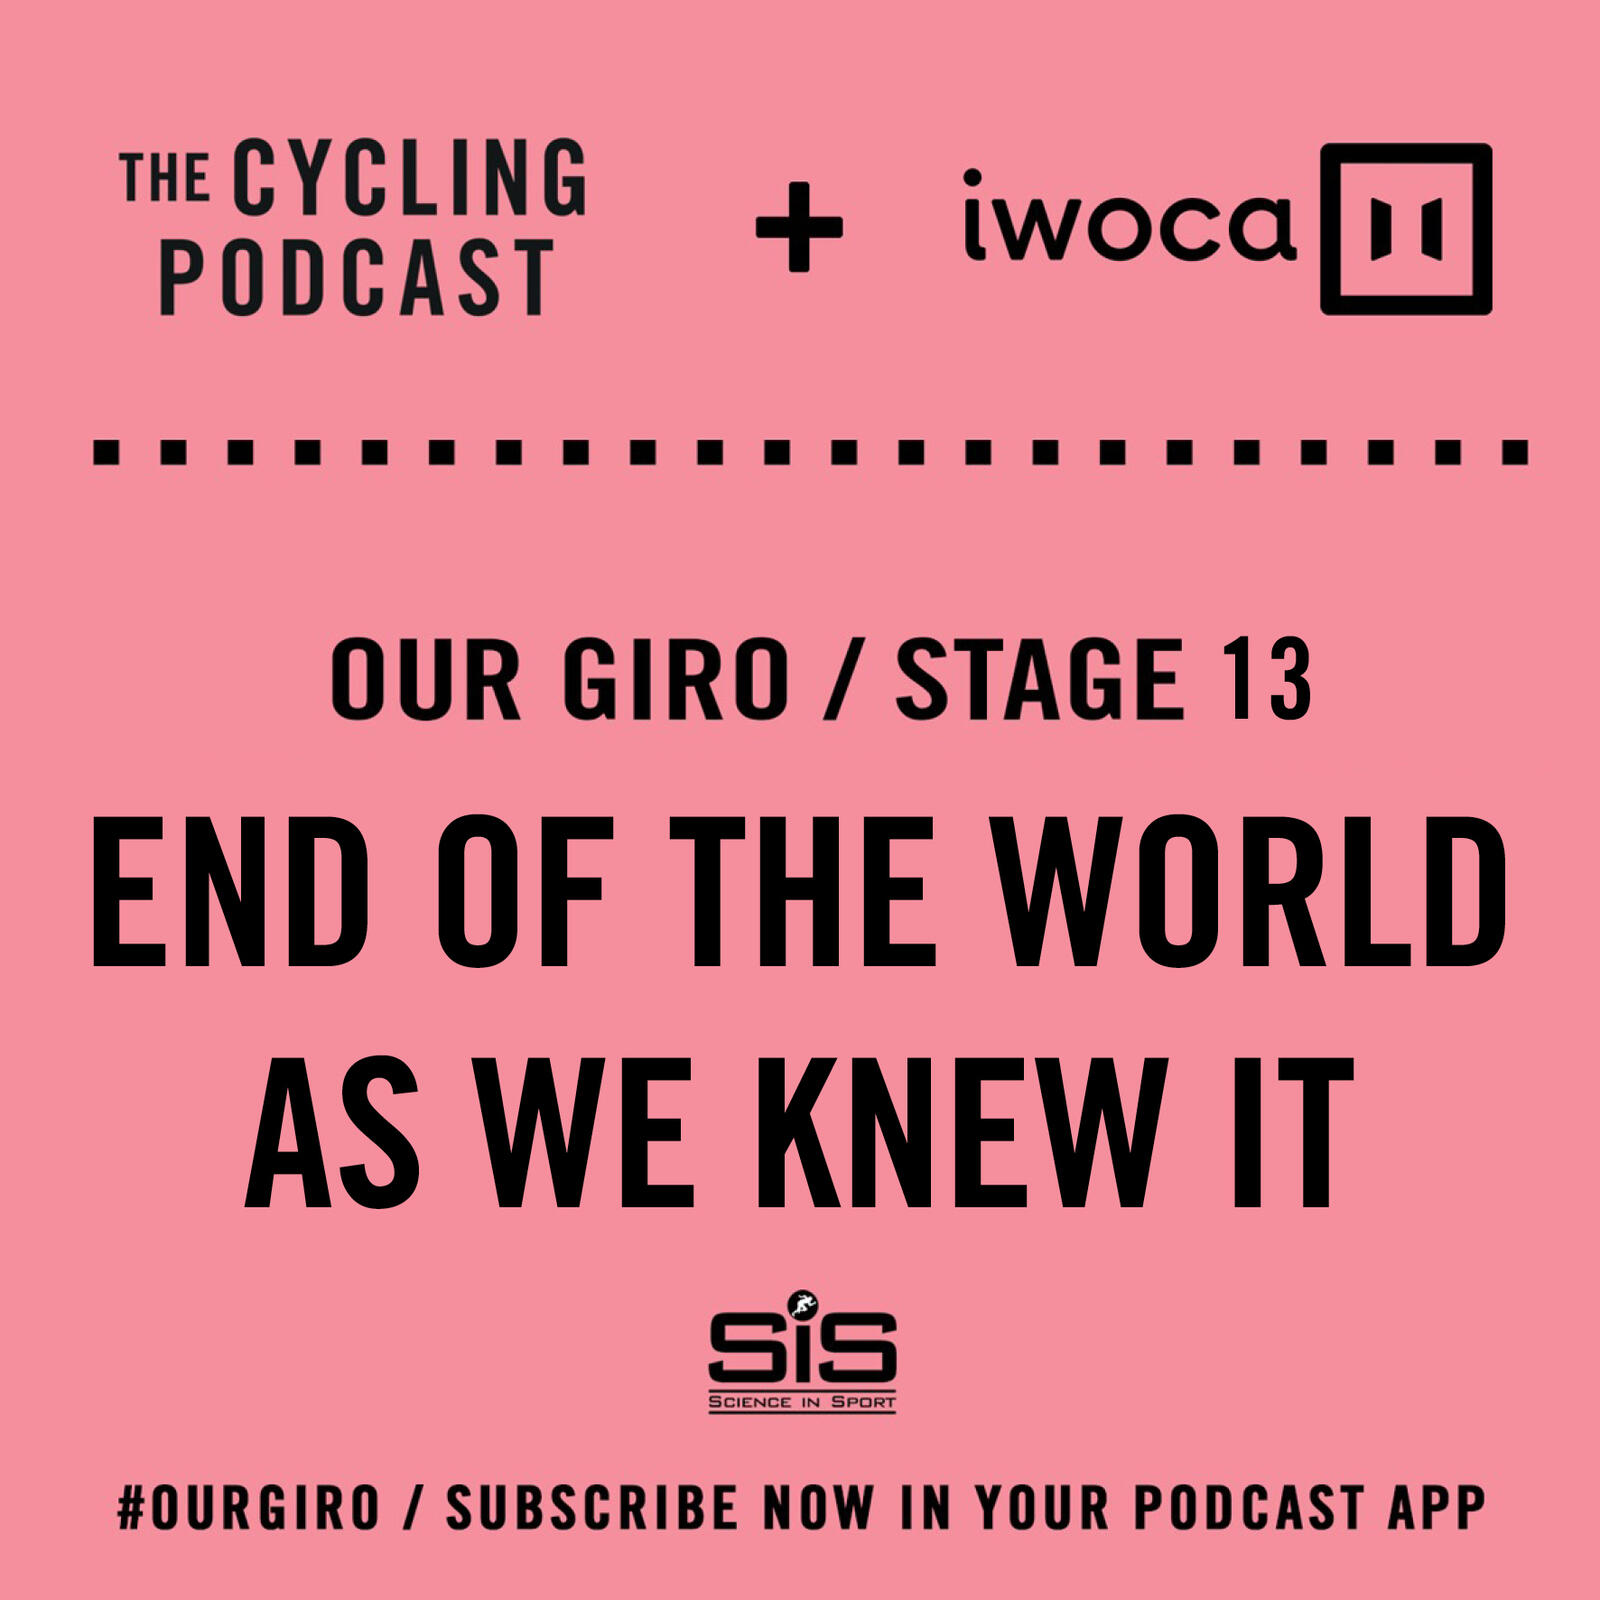 60: Our Giro stage 13: End of the world as we knew it